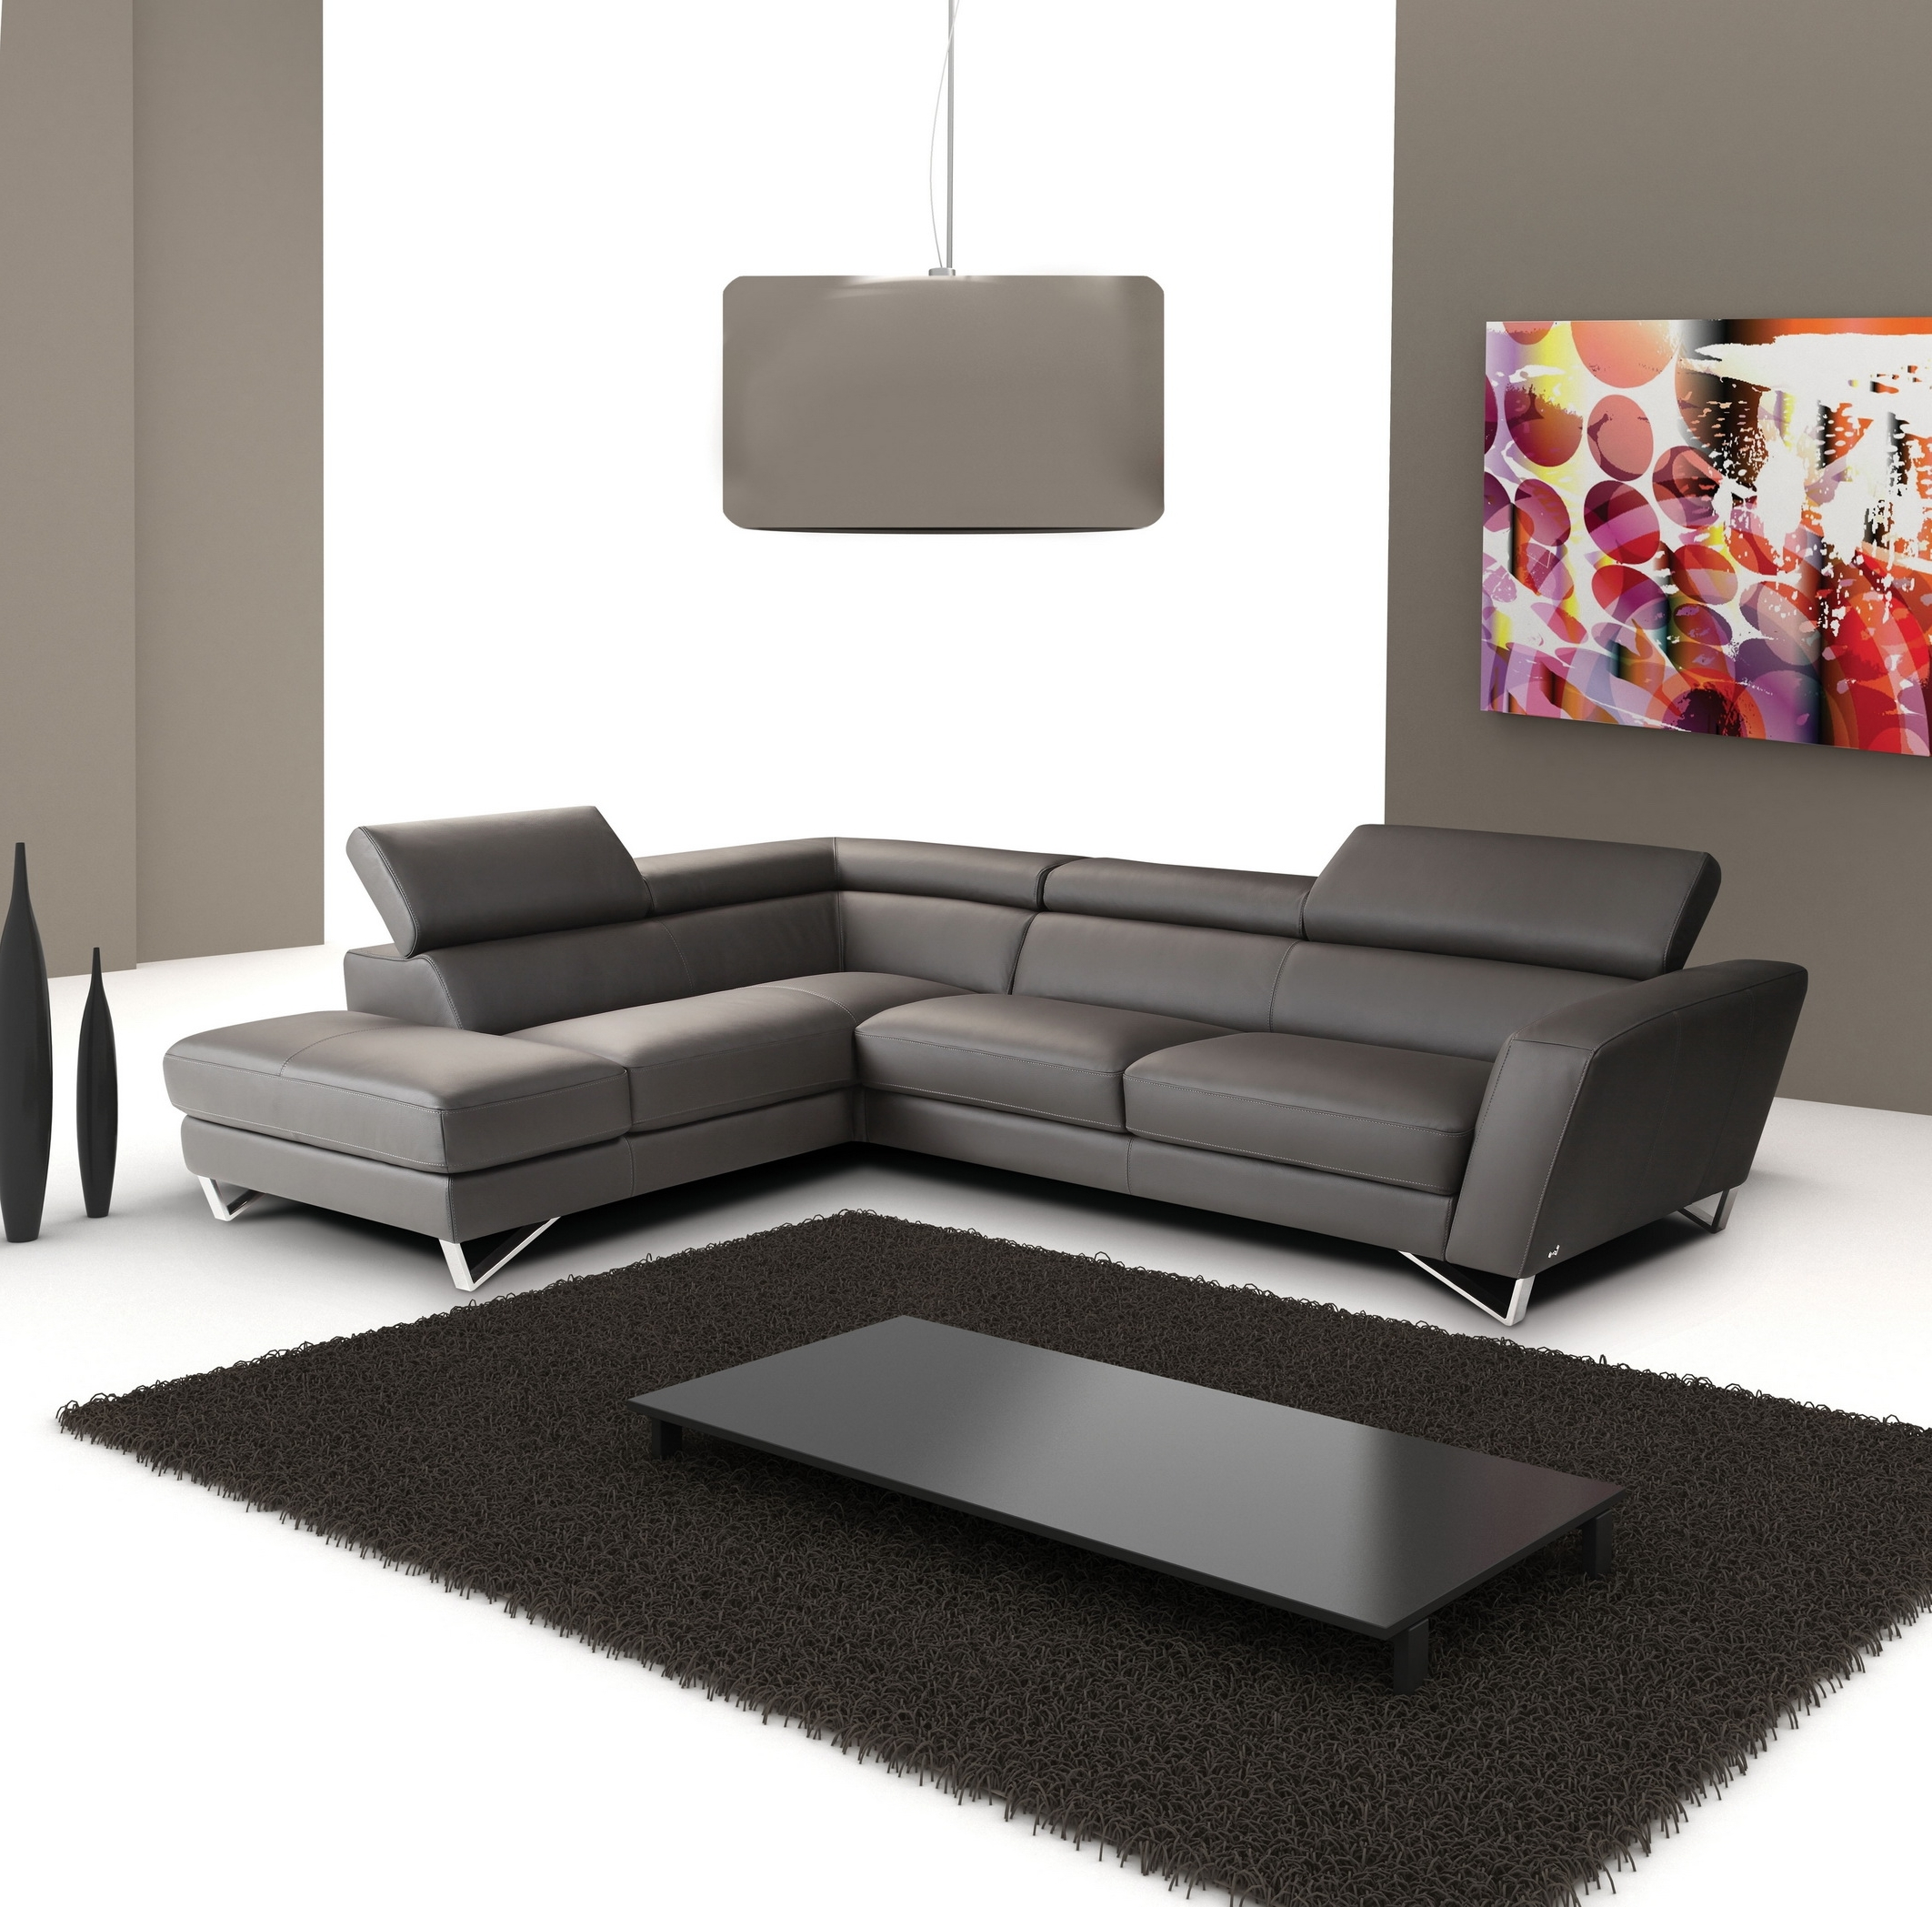 Preferred Sectional Sofas Under 300 Inside Furniture: Using Pretty Cheap Sectional Sofas Under 300 For (View 9 of 15)